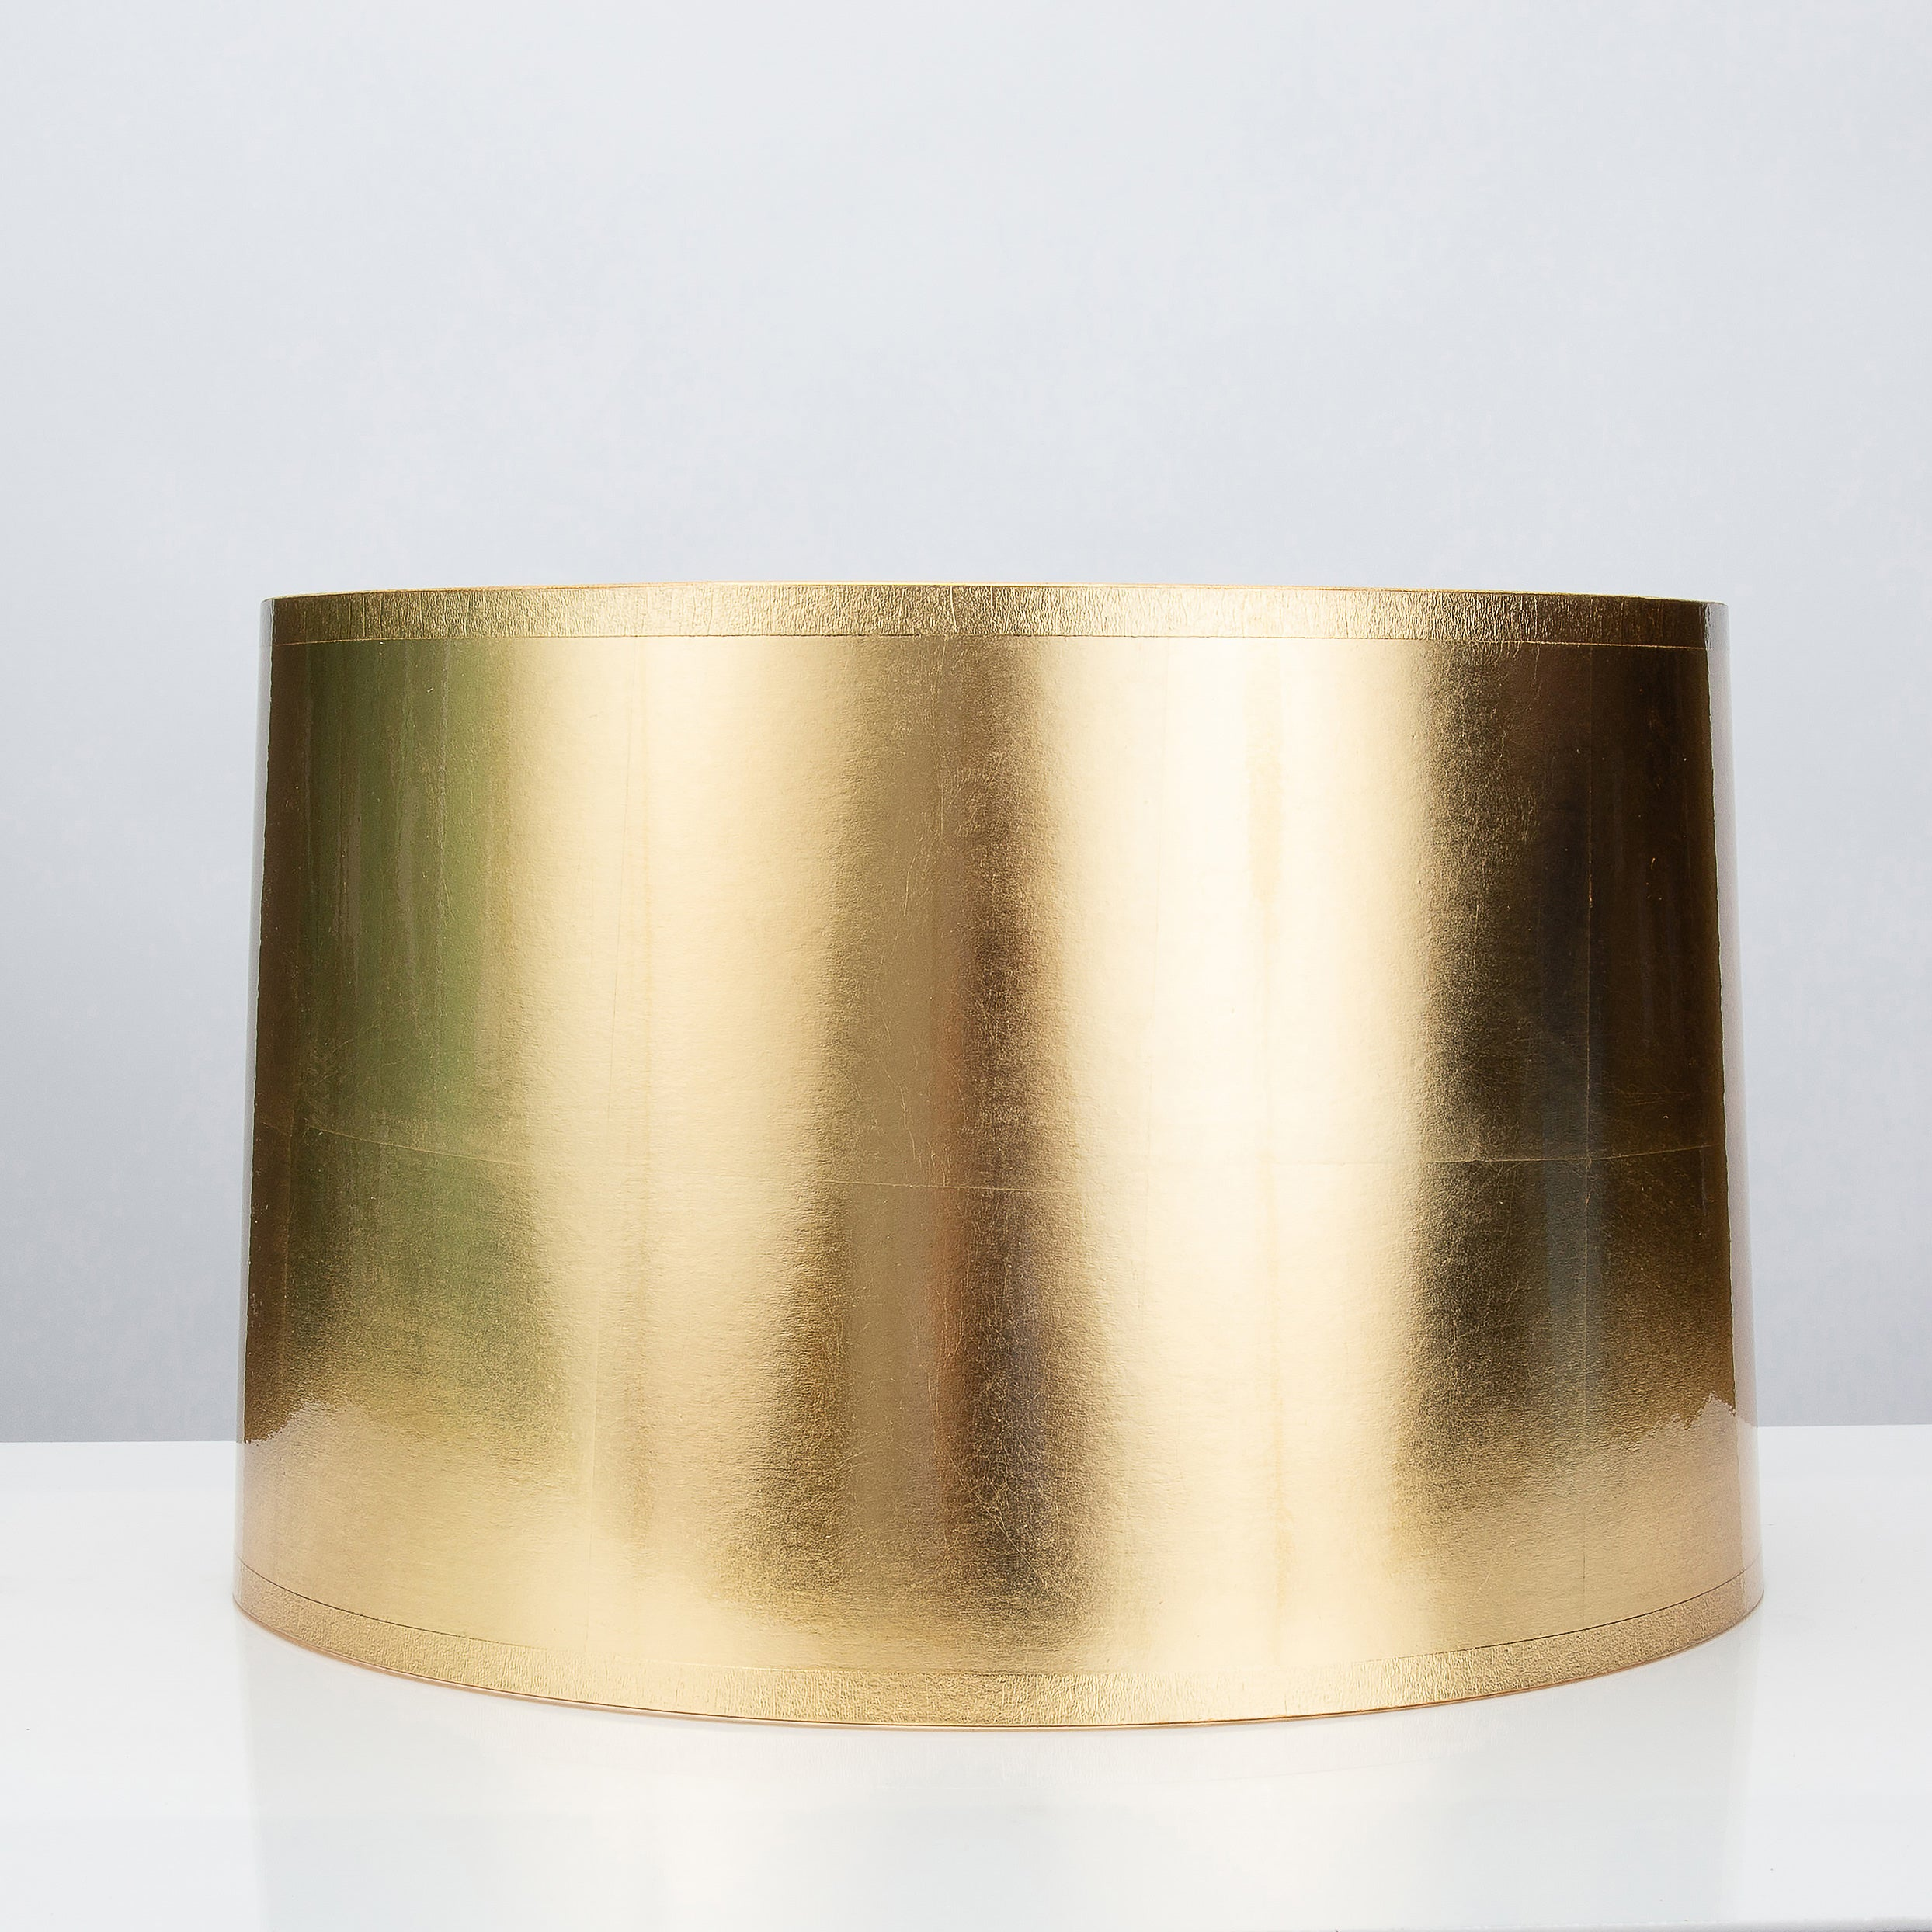 "Round Tapered Gold Foil Lamp Shade 16 x 17 x 11"" - Couture Lamps"